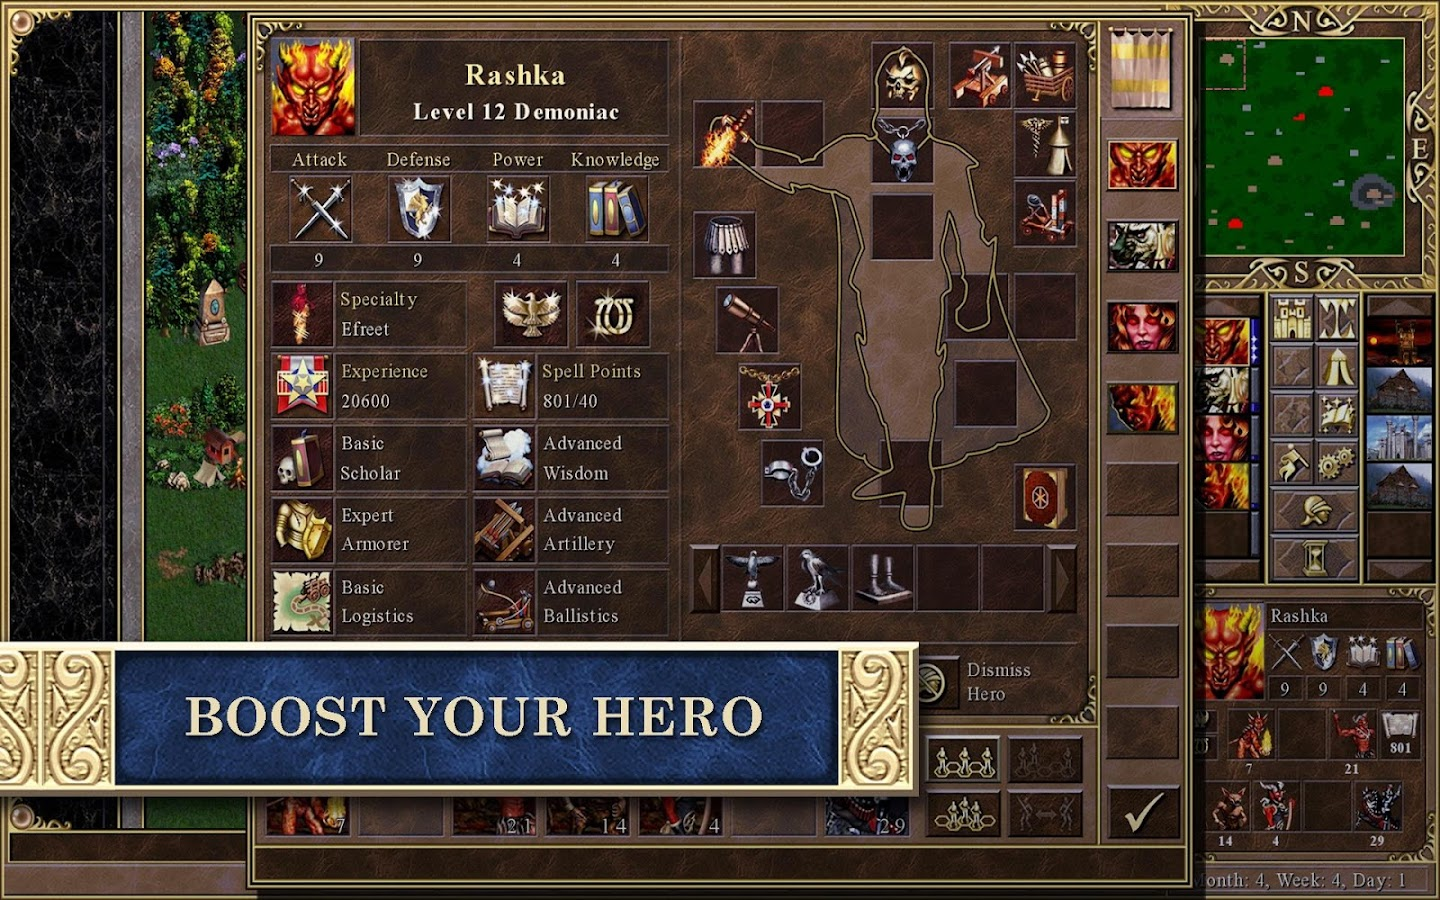 Heroes of Might & Magic III HD Screenshot 15